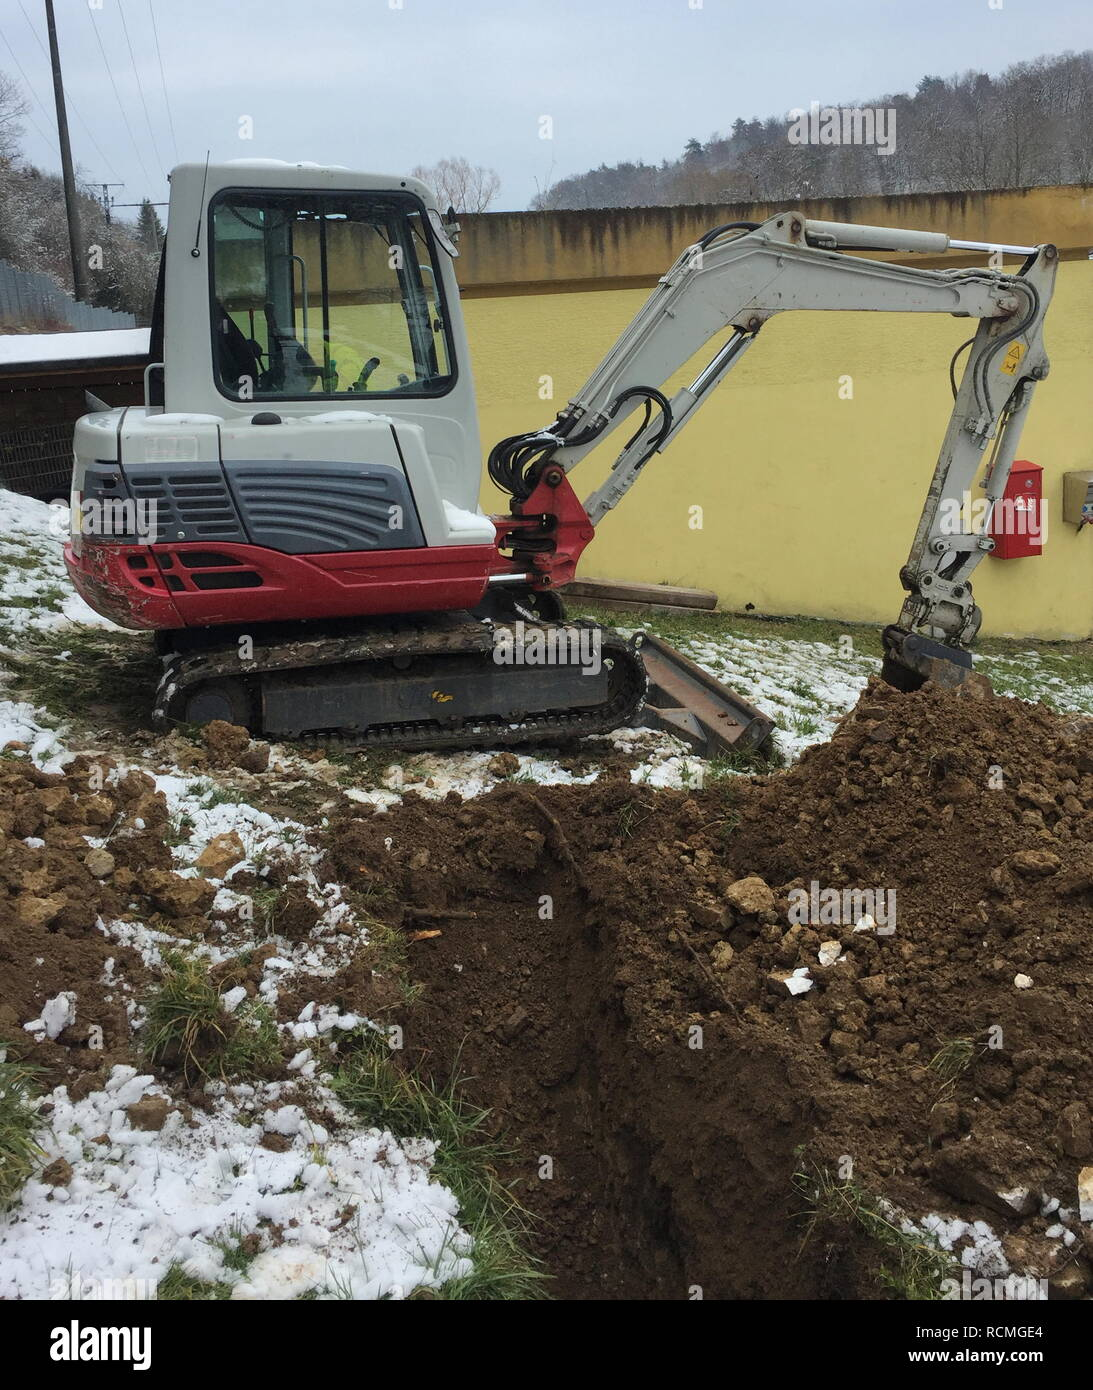 Excavator shovel digs into a ground covered with snow. - Stock Image